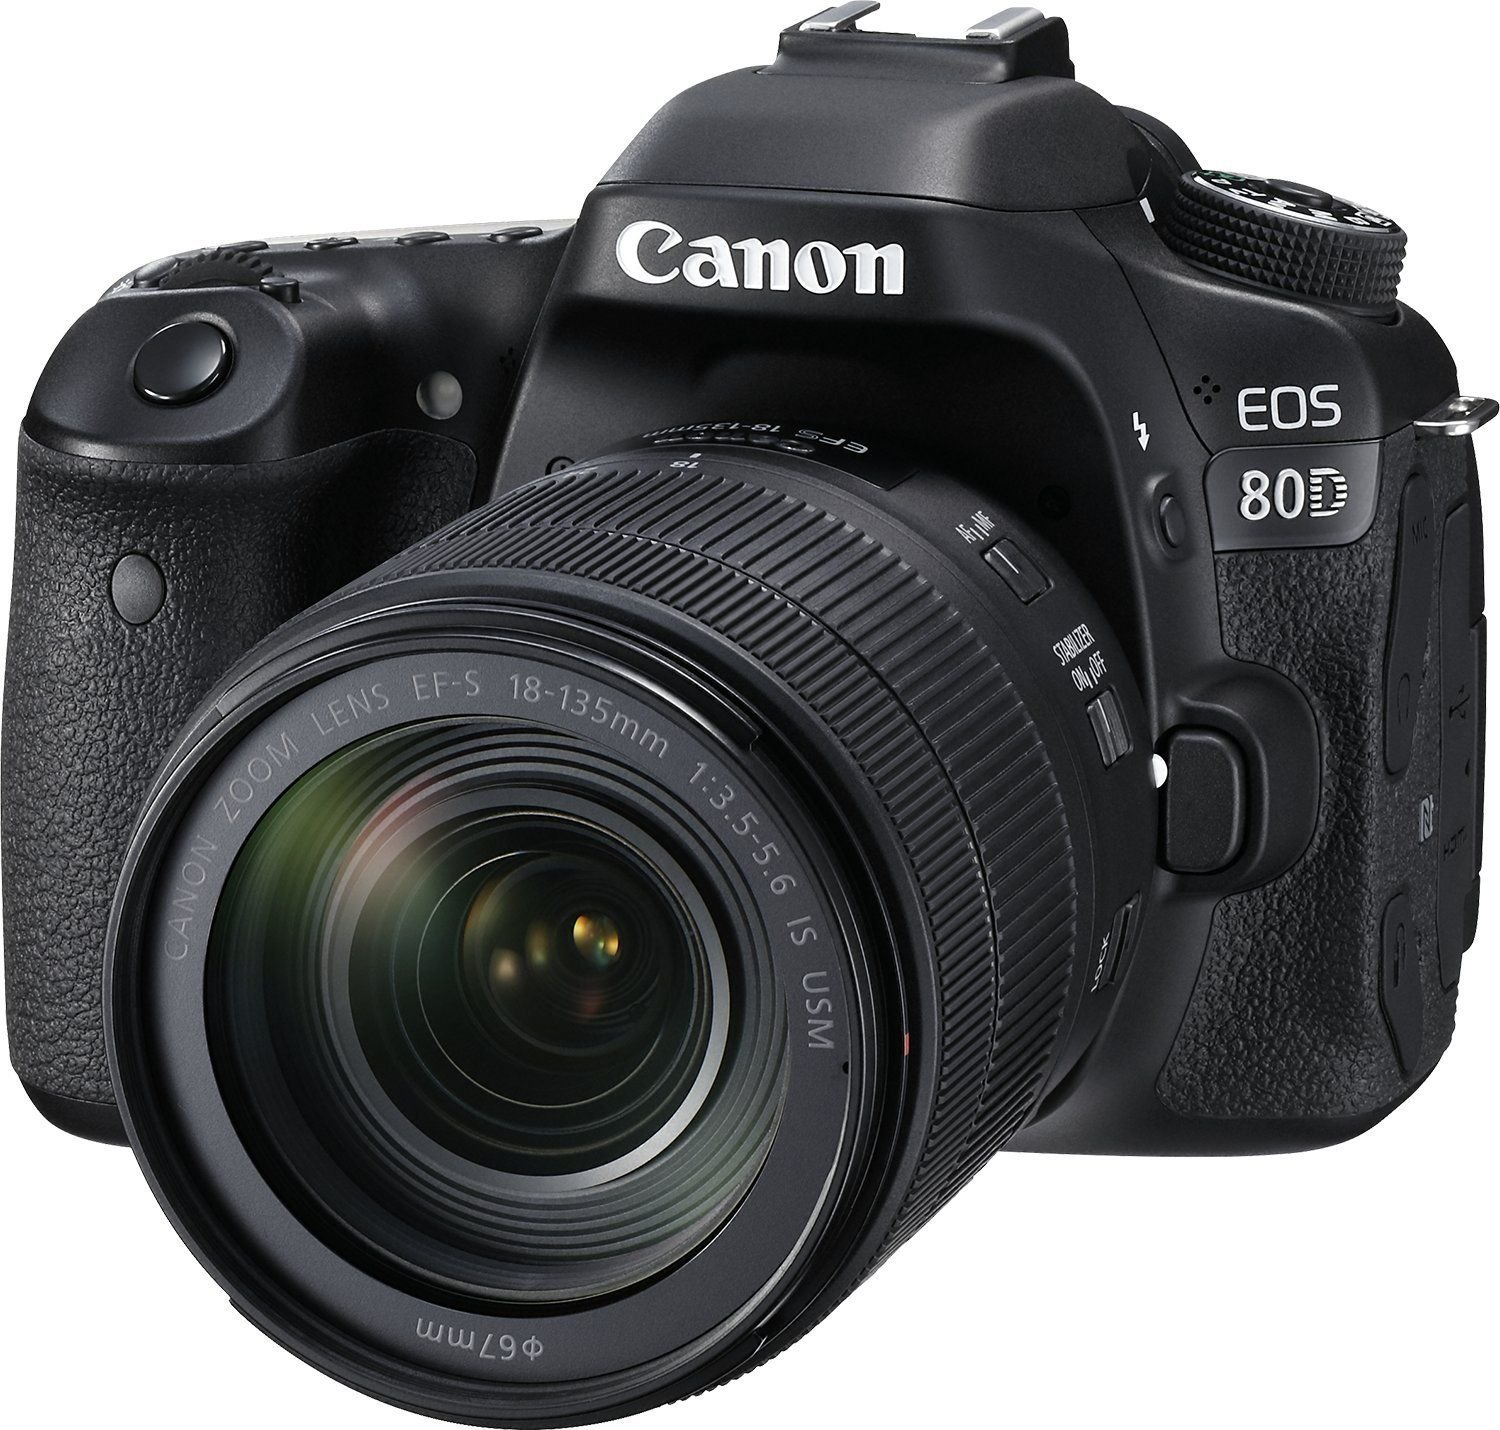 Canon EOS 80D DSLR Camera with 18-135mm Lens Black